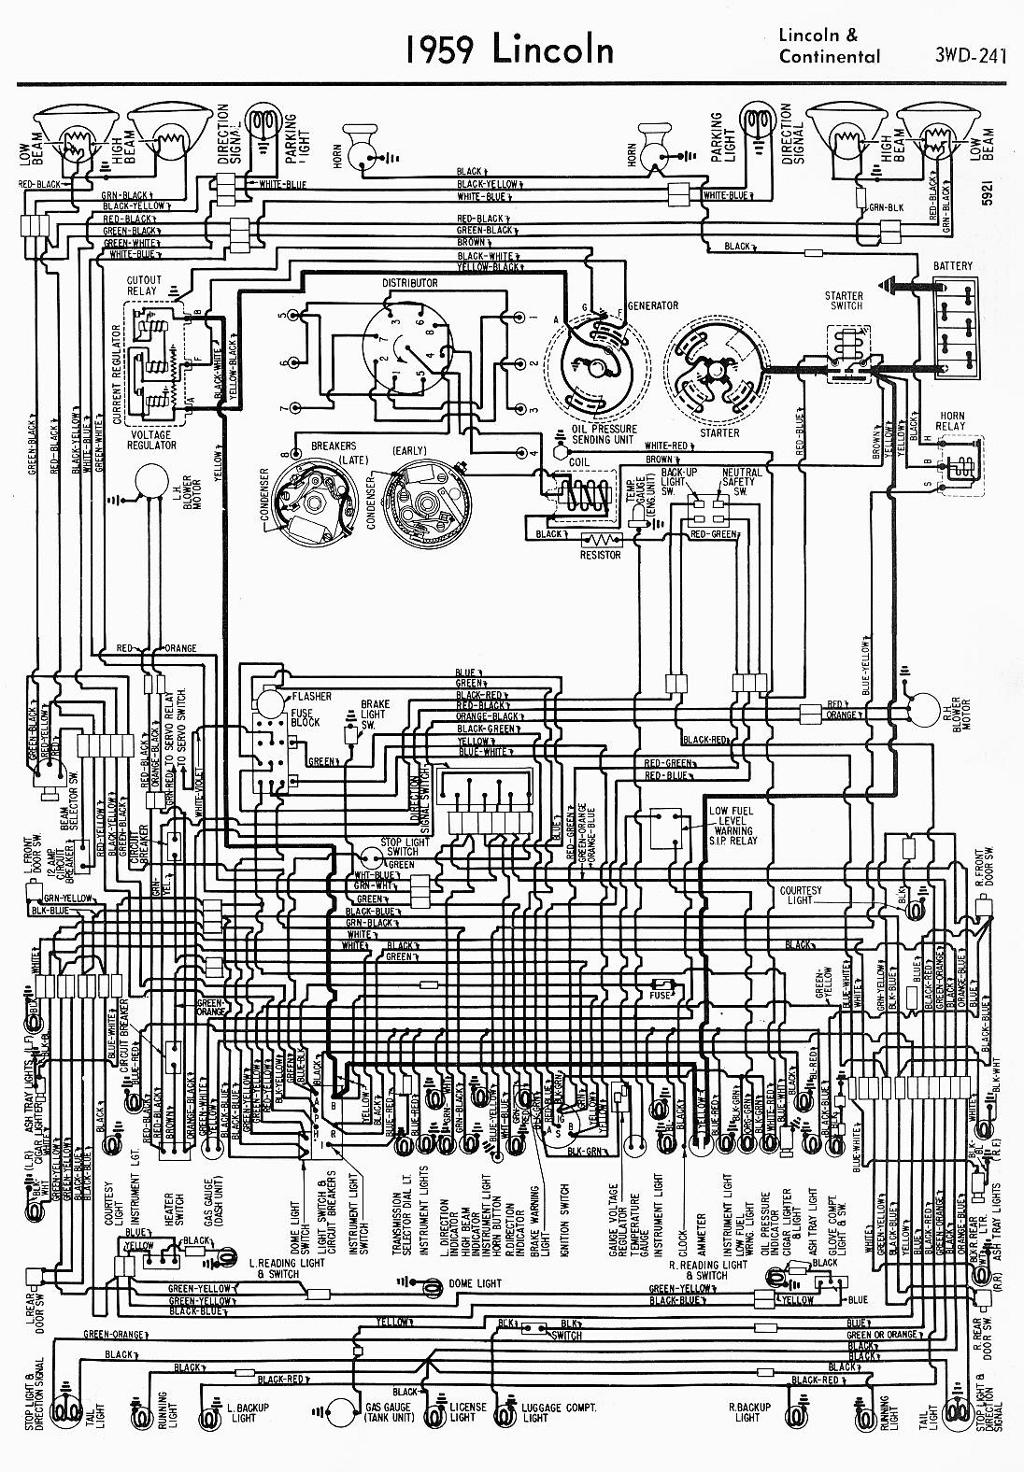 small resolution of www automotive manuals net app download 1388104542 1947 lincoln wiring diagram 1947 lincoln wiring diagram